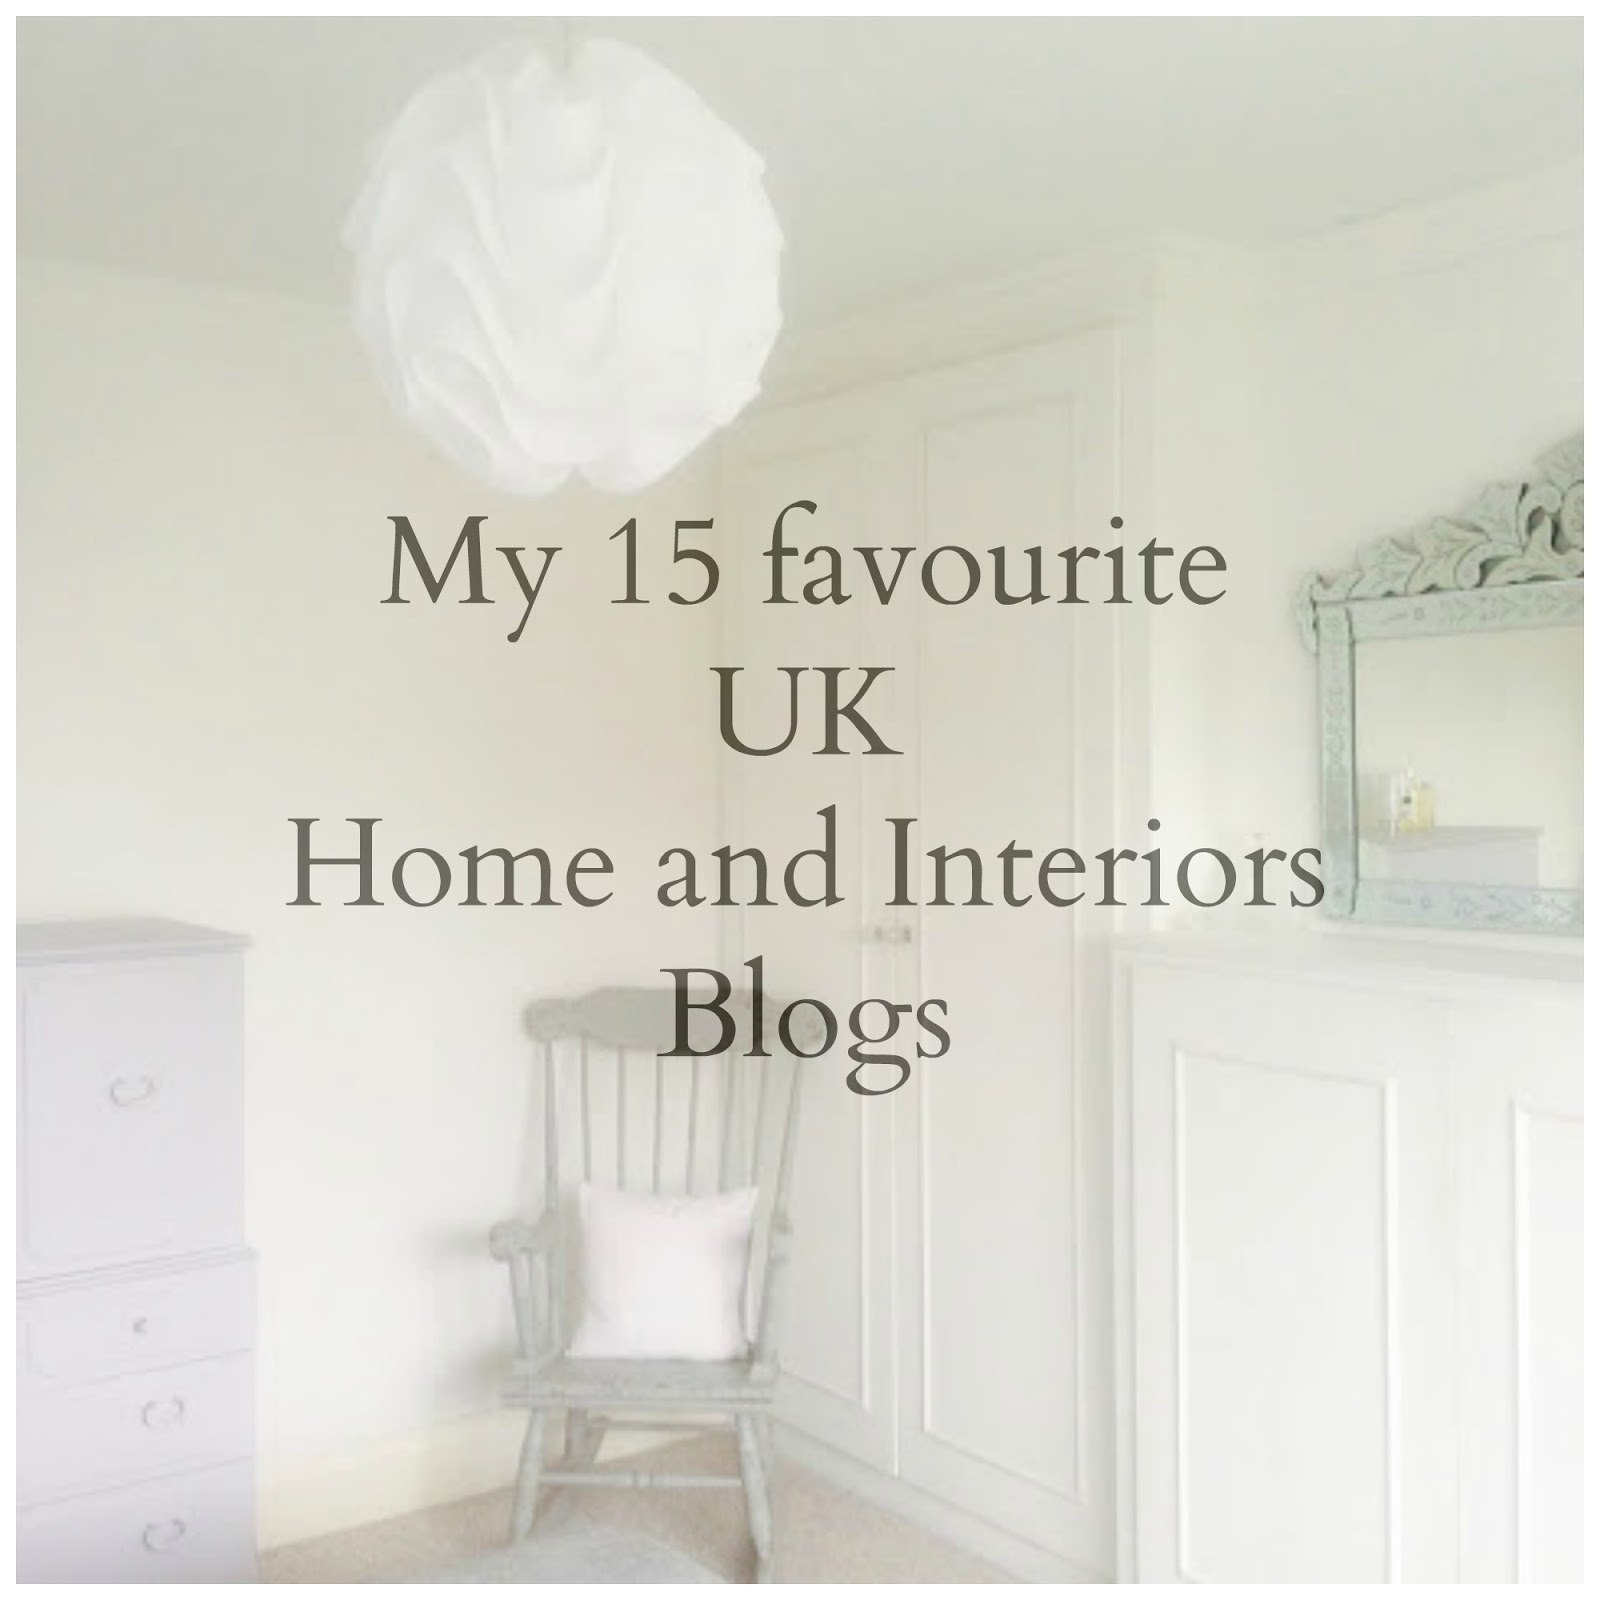 my 15 favourite uk home and interiors blogs - the white approach